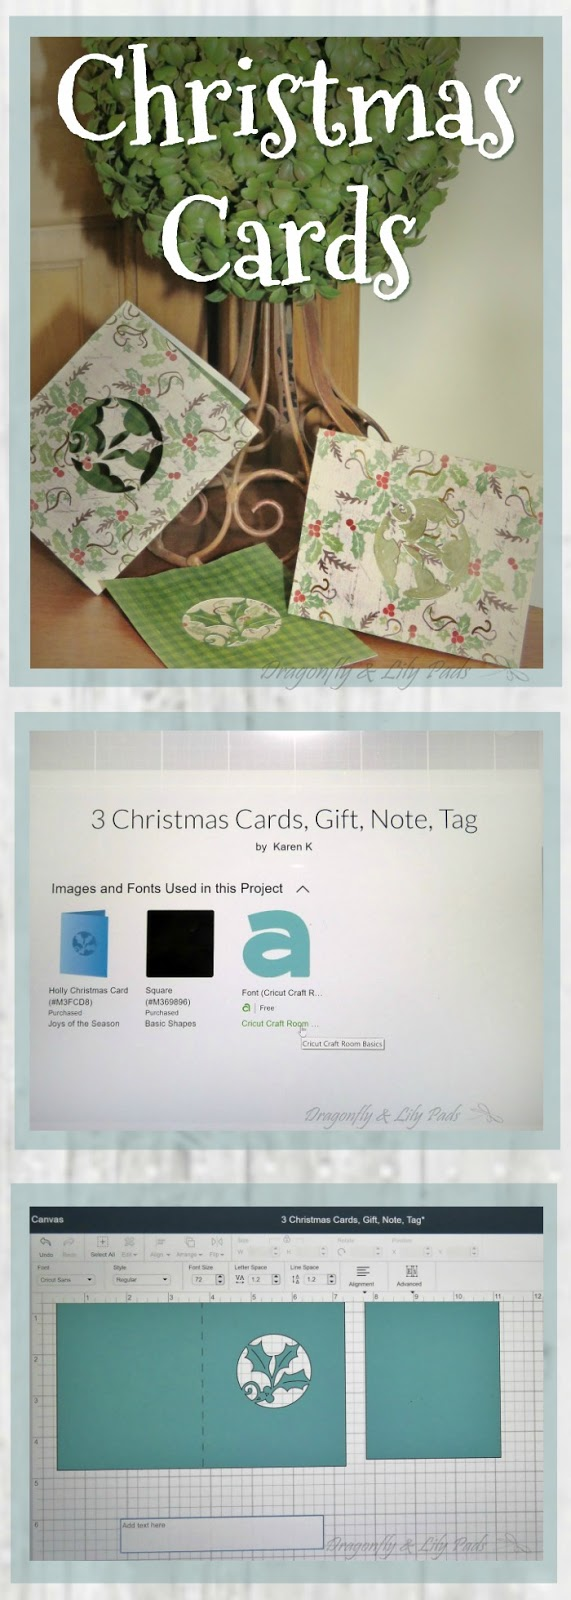 Christmas Gift Cards Pinnable Image made with holly and plaid cardstock.